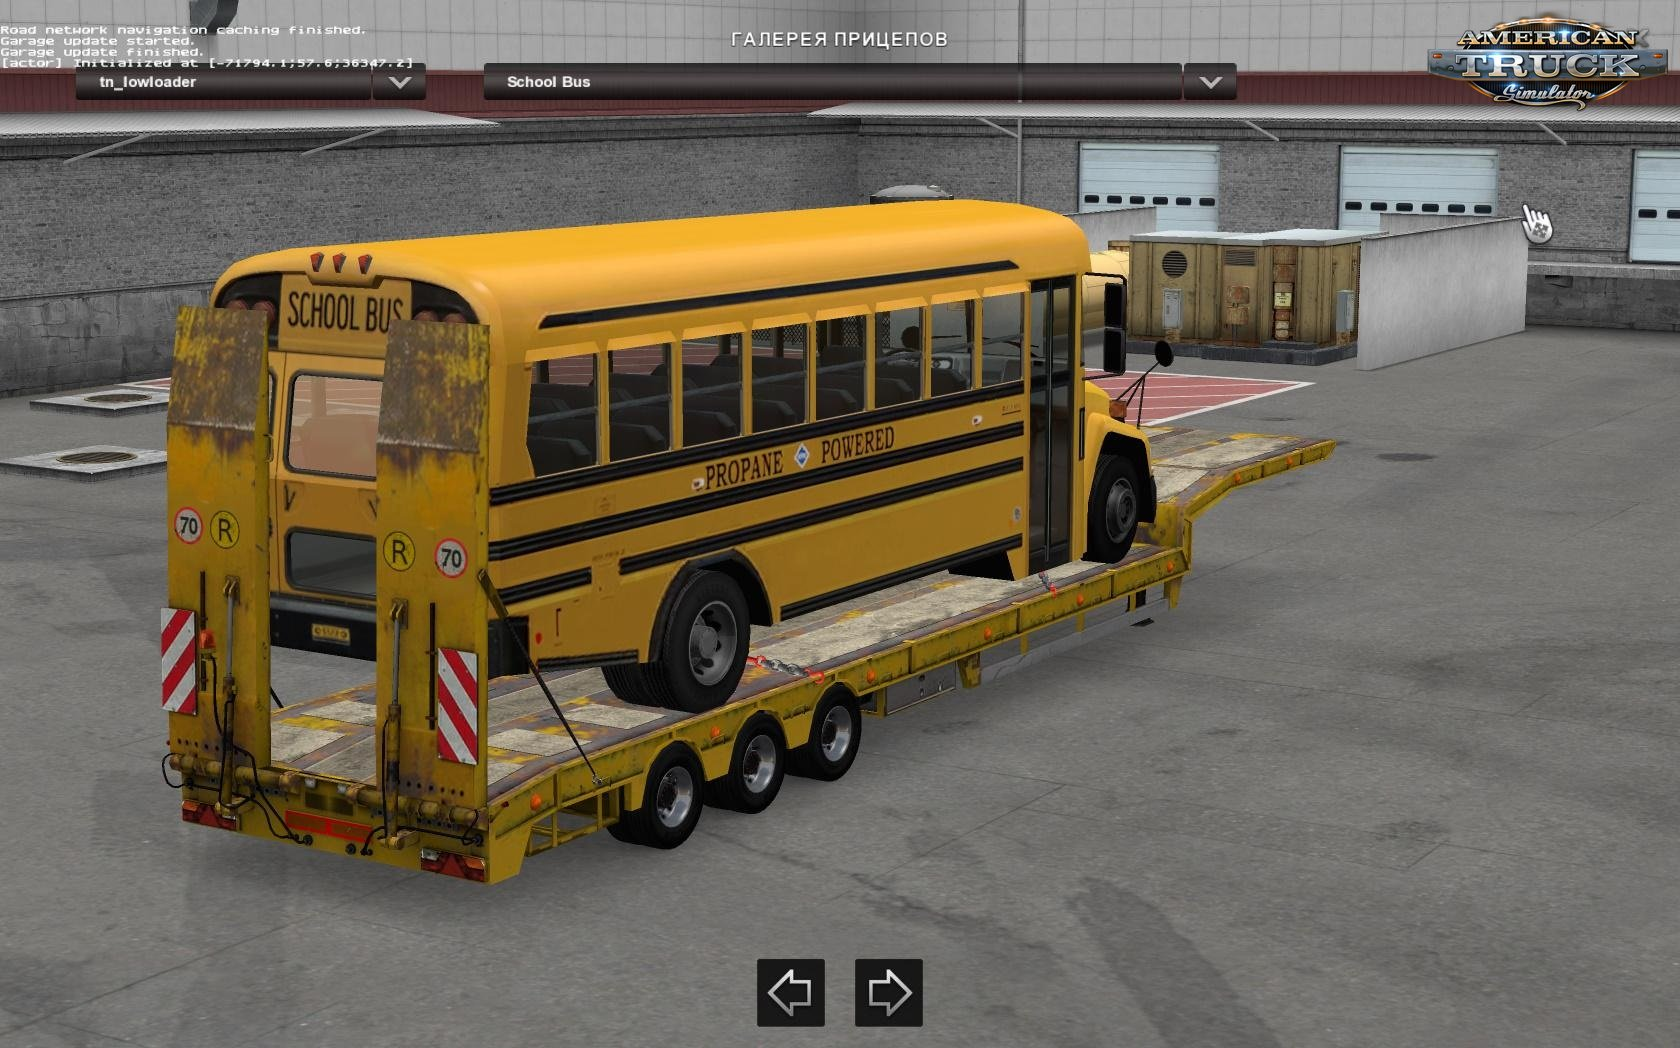 School Bus Trailer Mod [1.6.x]